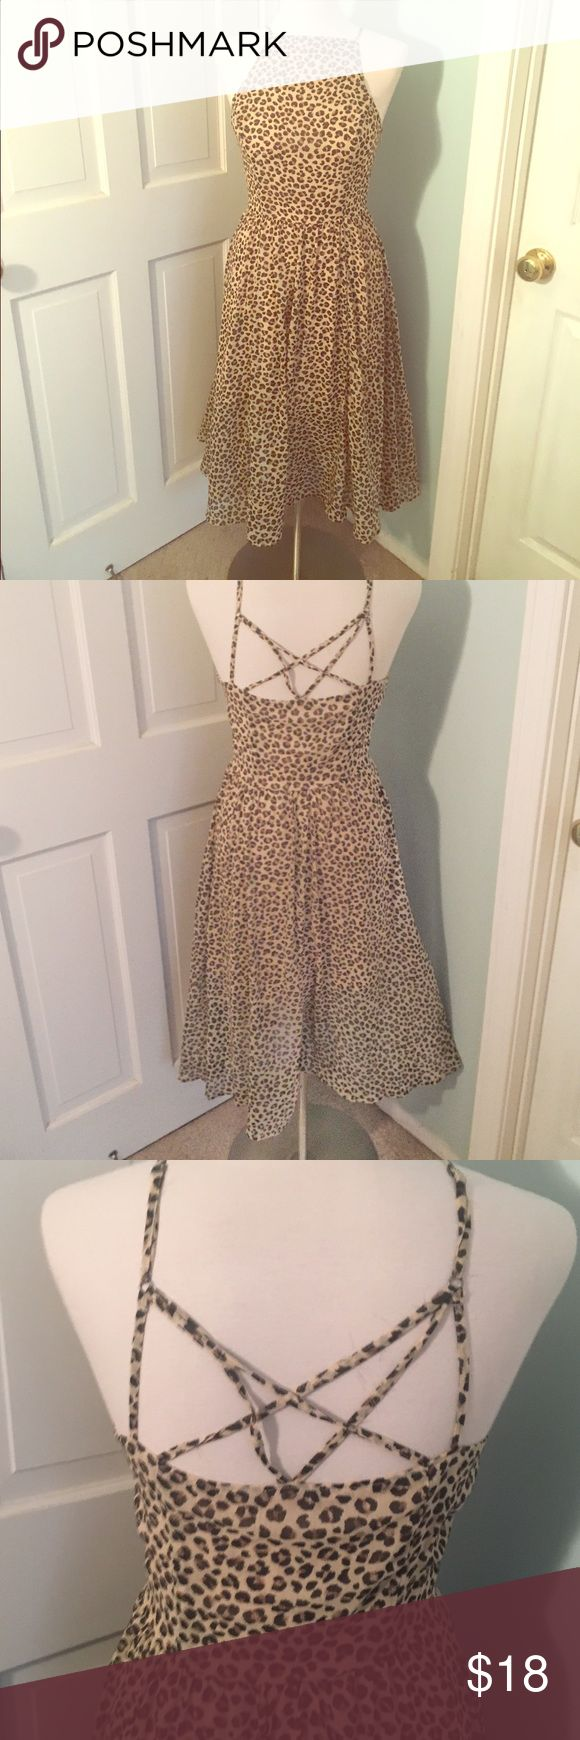 Abercrombie and Fitch cheetah print dress Brand new with tags Abercrombie and fitch cheetah tea length dress. Skinny straps with criss cross strap detail in back. Side zipper,  size medium. Straps have some fraying but not very noticeable. High neck detail. Chiffon. Abercrombie & Fitch Dresses Midi